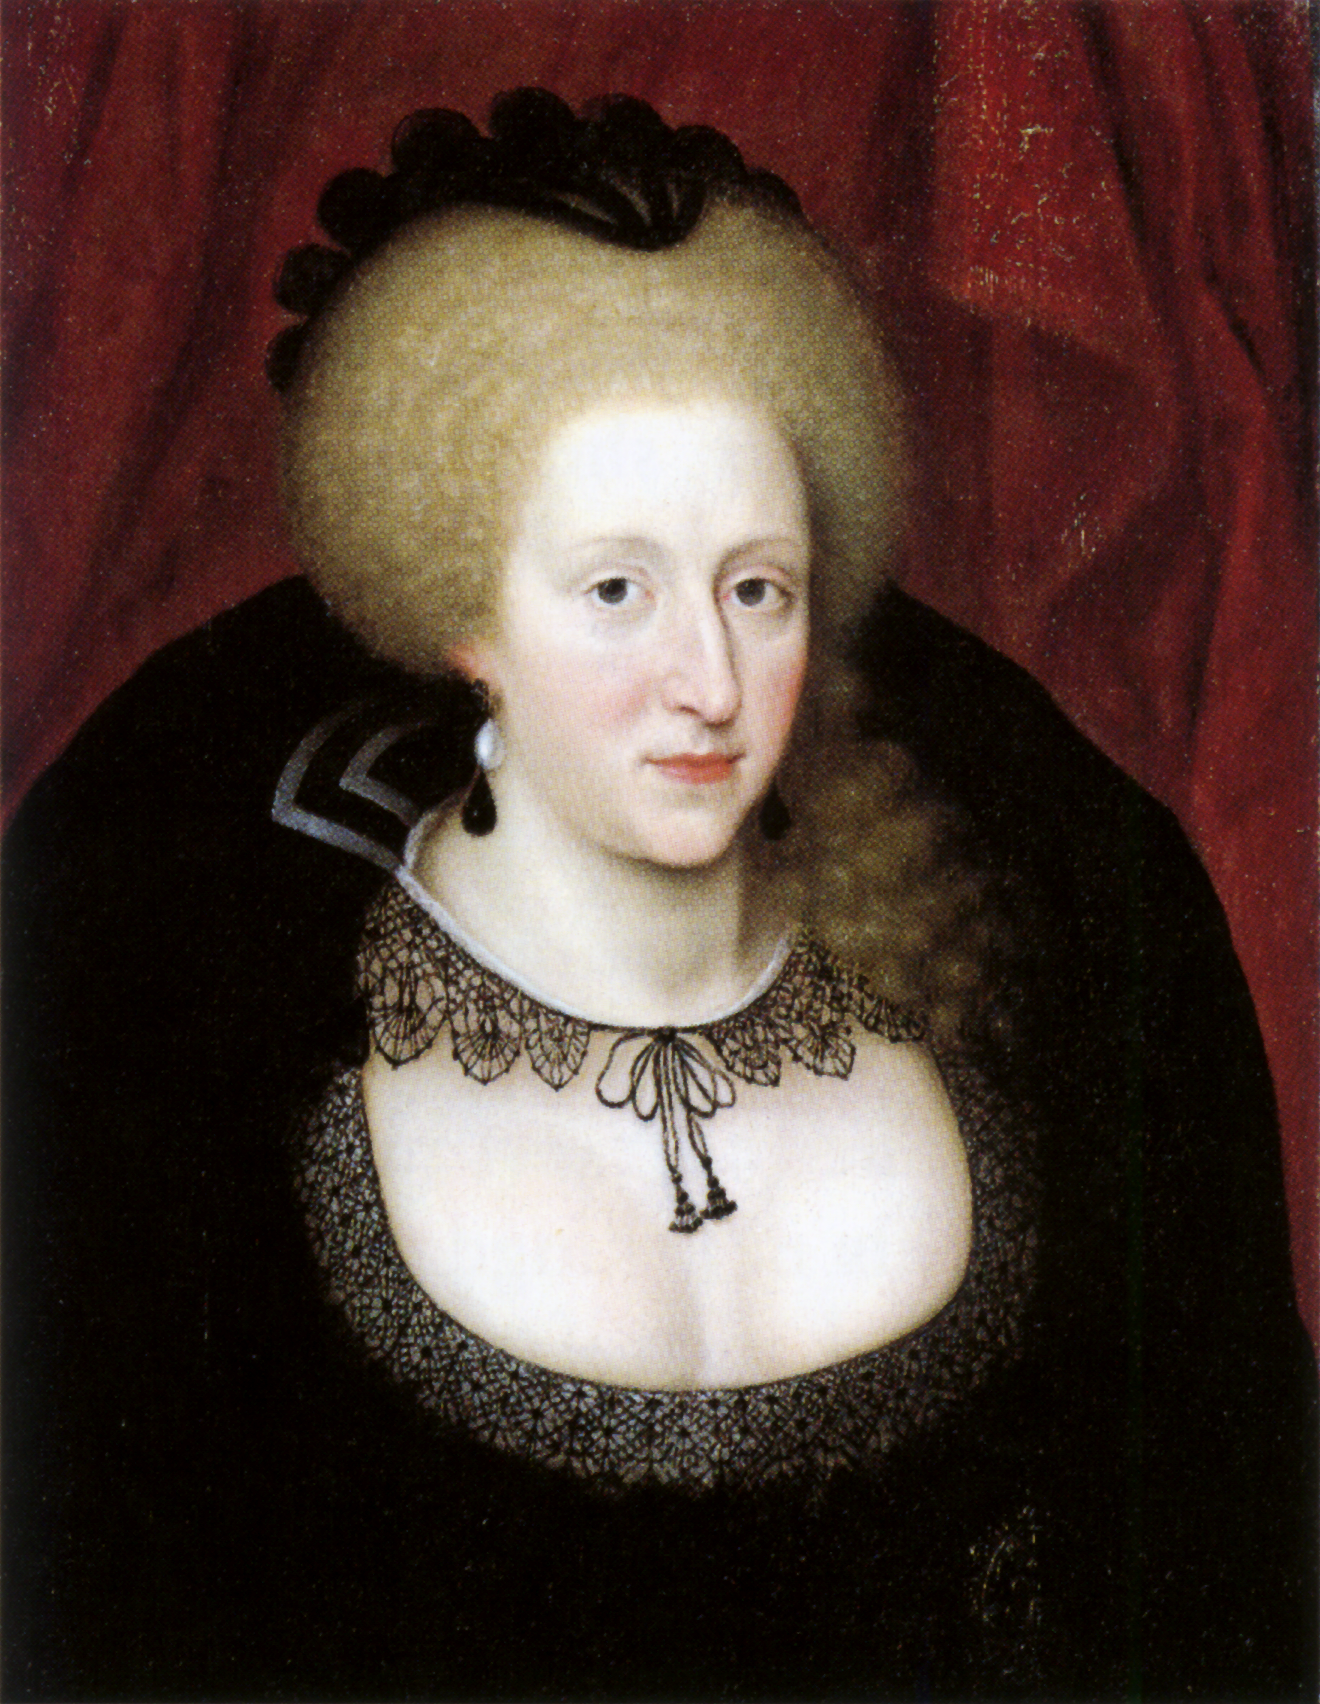 Portrait of Anne of Denmark in mourning attire by Marcus Gheeraerts the Younger. Image courtesy of the National Portrait Gallery (UK).